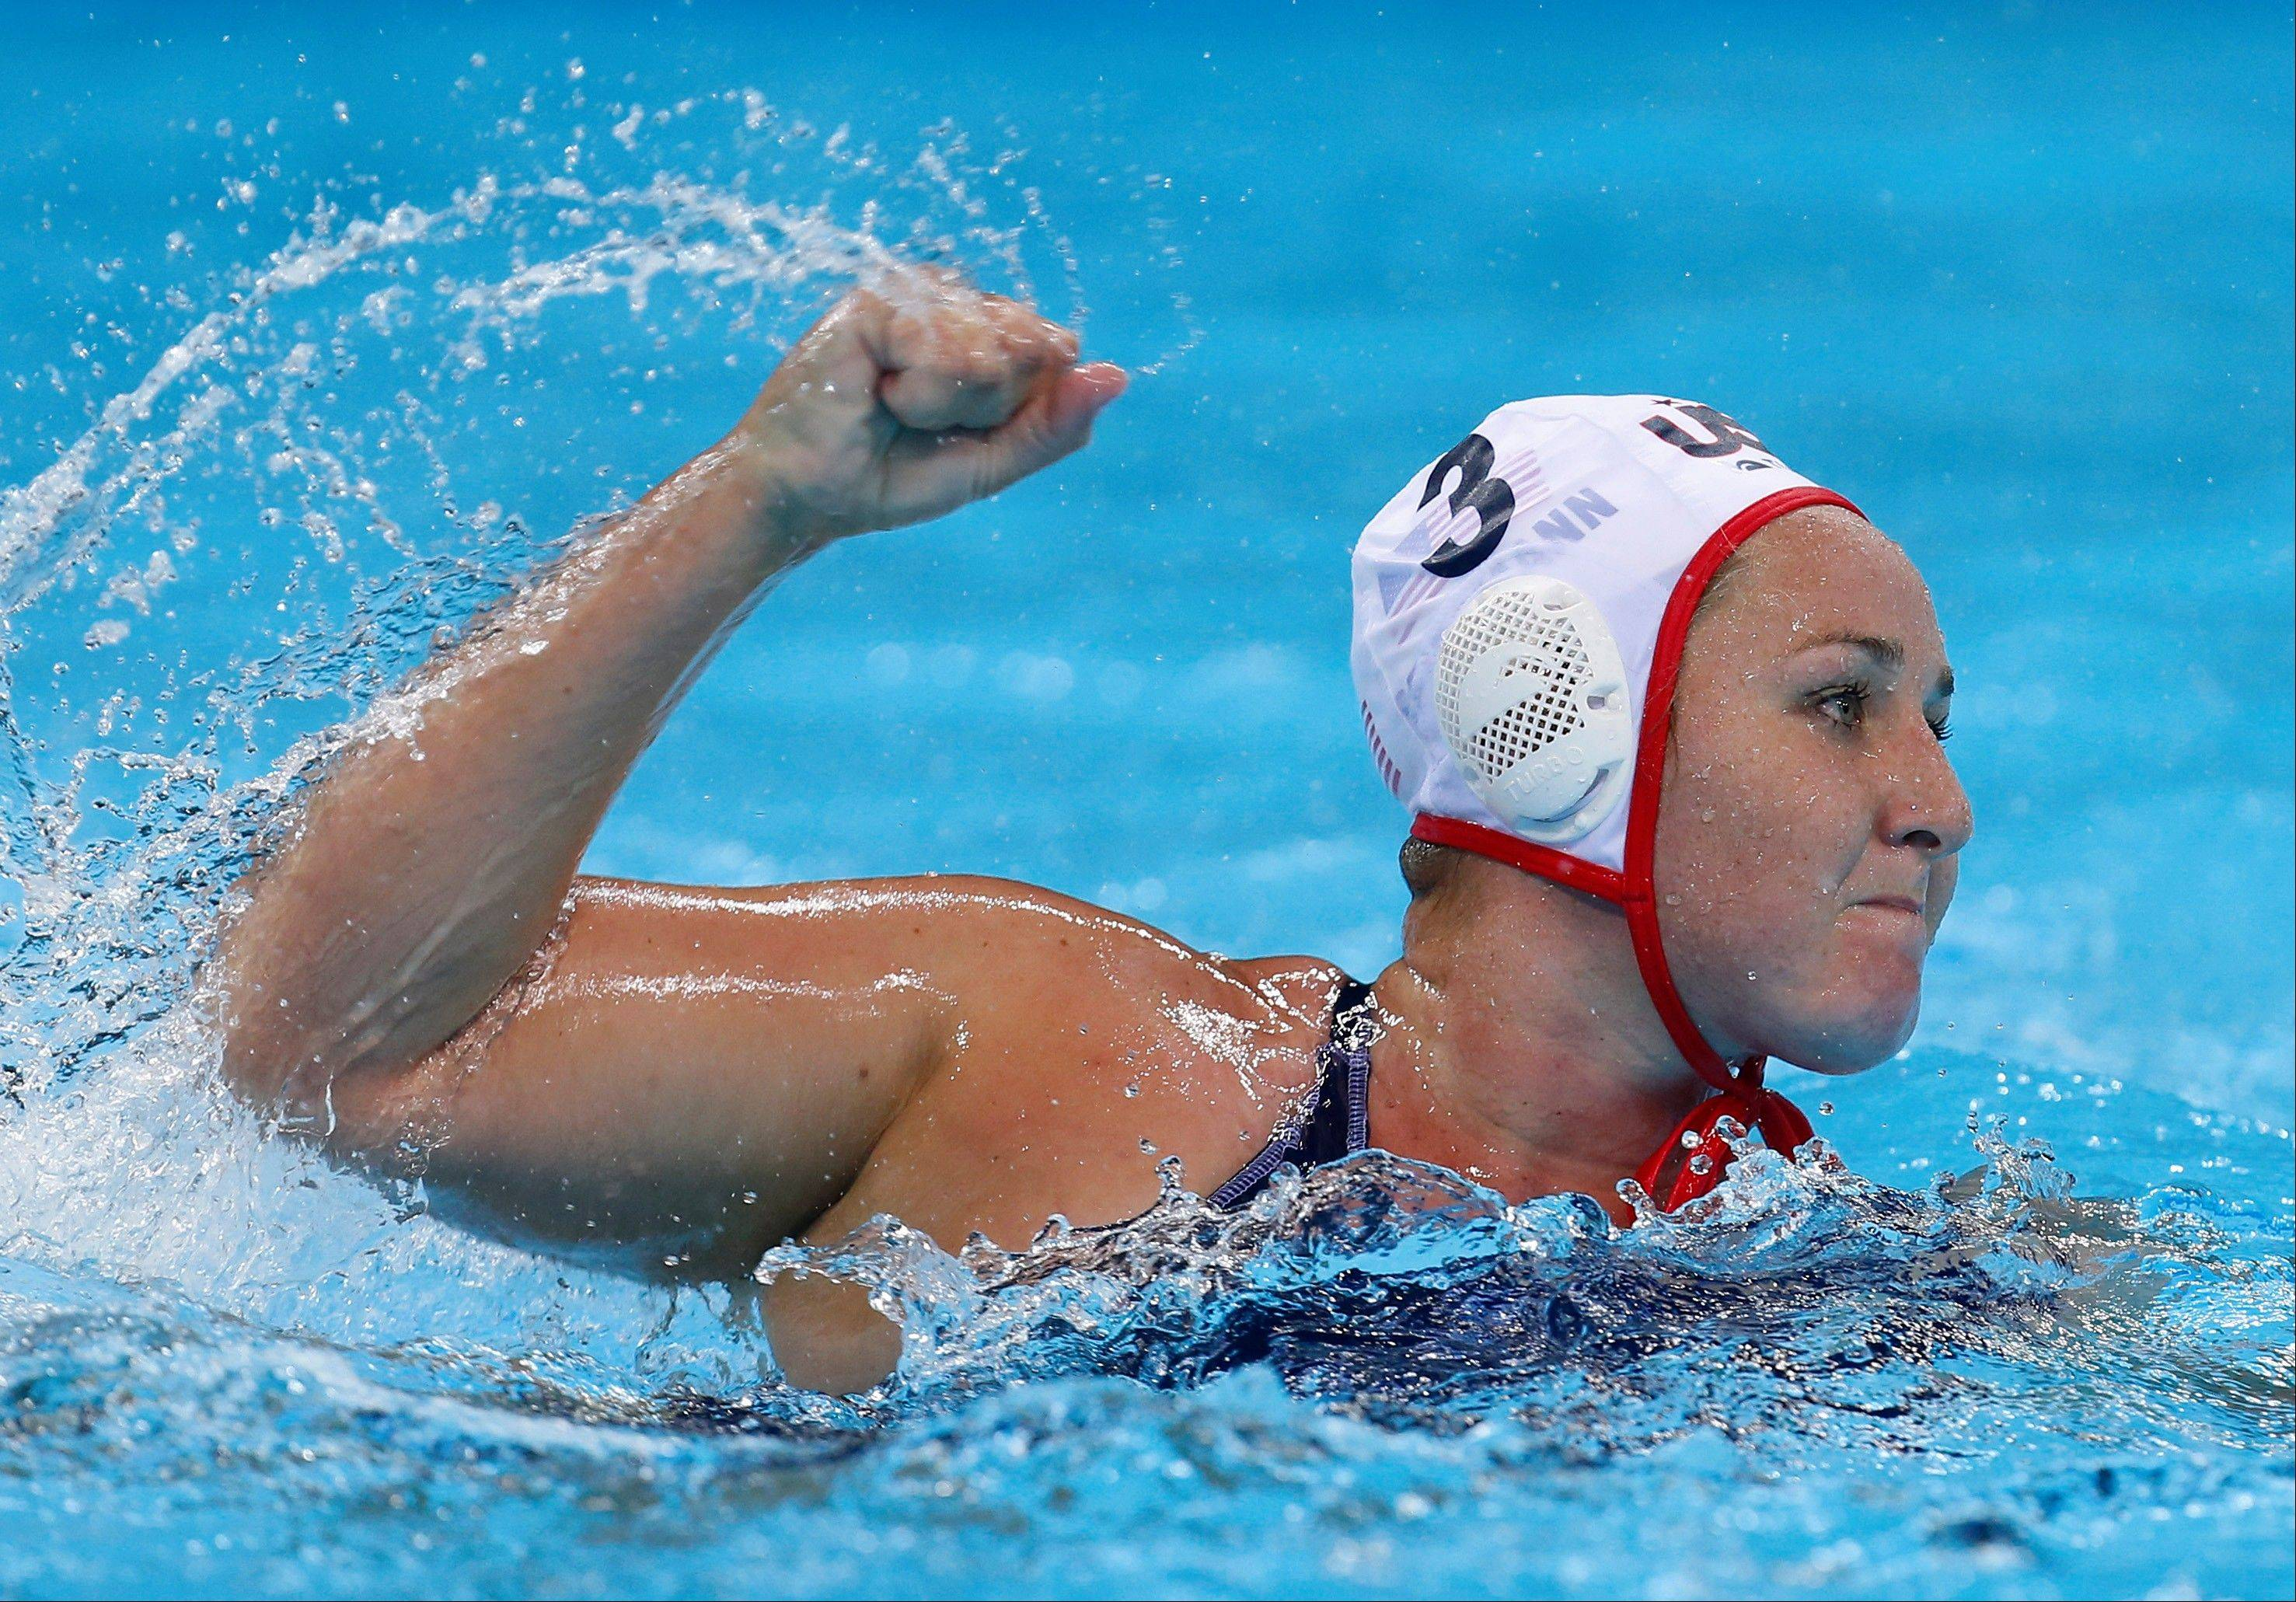 Melissa Seidemann of the United States celebrates after scoring a goal against Australia during their women's semifinal water polo match at the 2012 Summer Olympics, Tuesday, Aug. 7, 2012, in London.